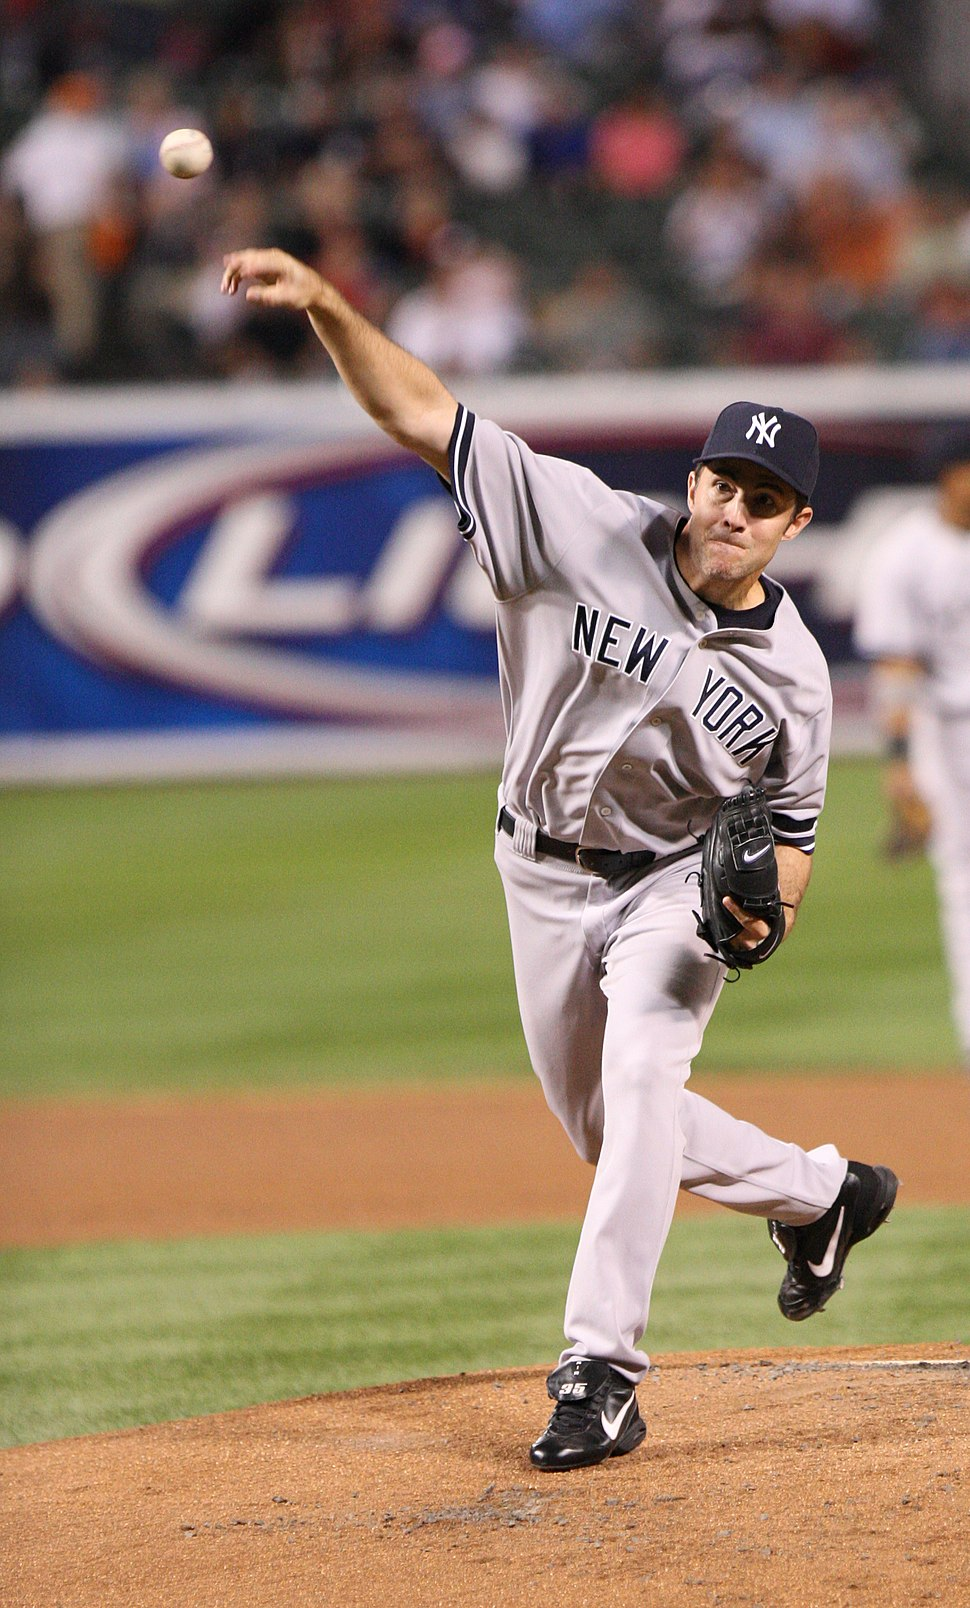 Mike Mussina on September 28, 2007